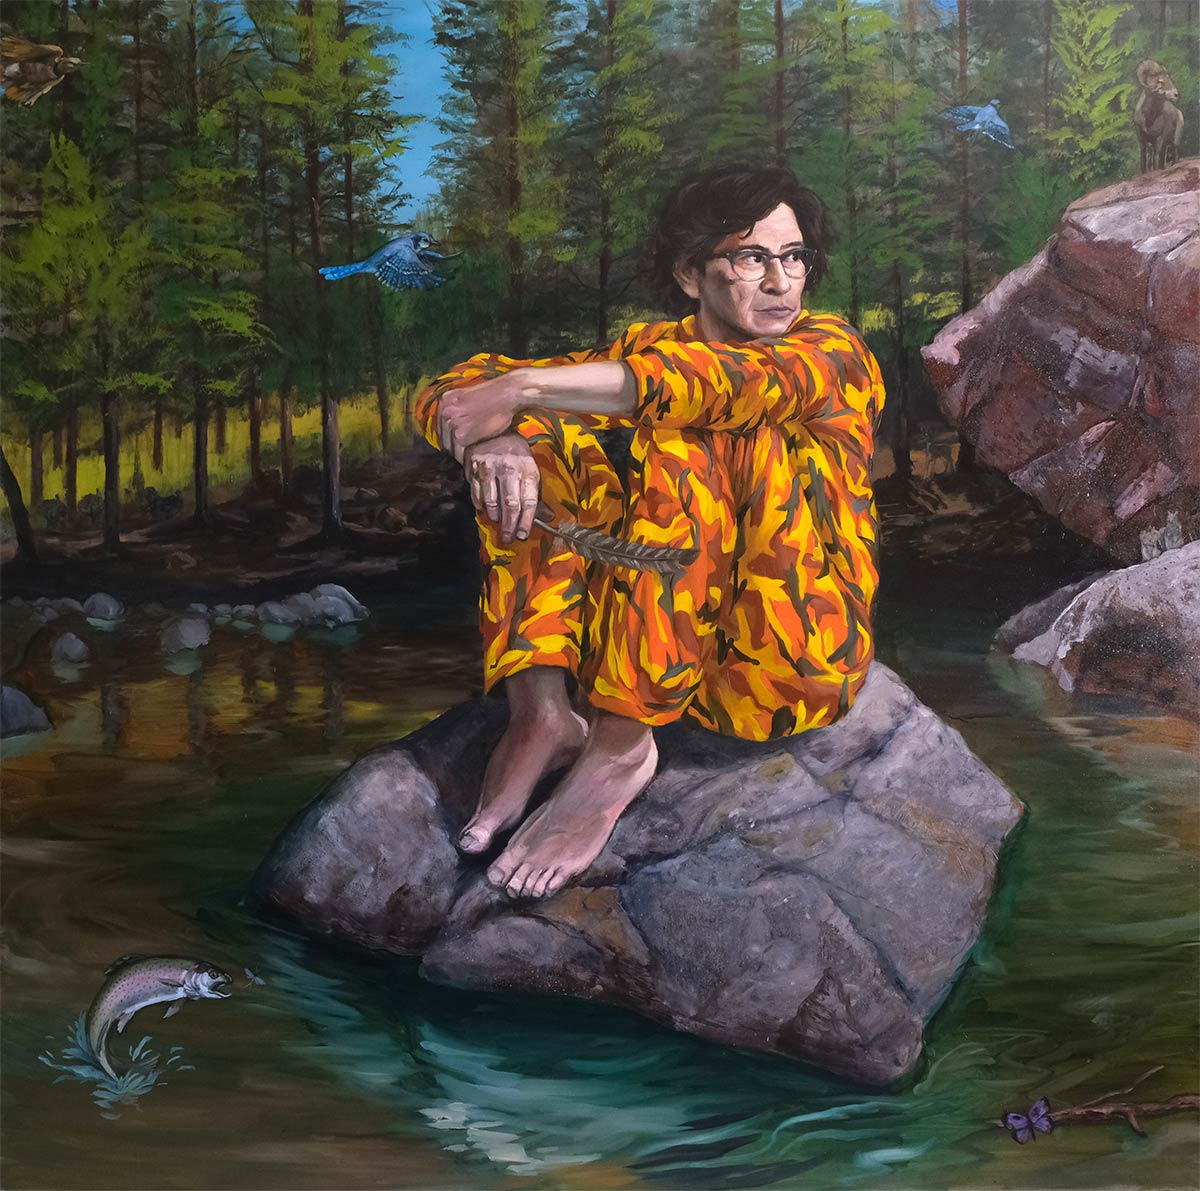 diptych by Steven Yazzie showing self portrait in orange camo style pajamas sitting on a rock in nature looking towards the other painting showing a coyote sitting on a cushioned arm chair in a studio/interior setting